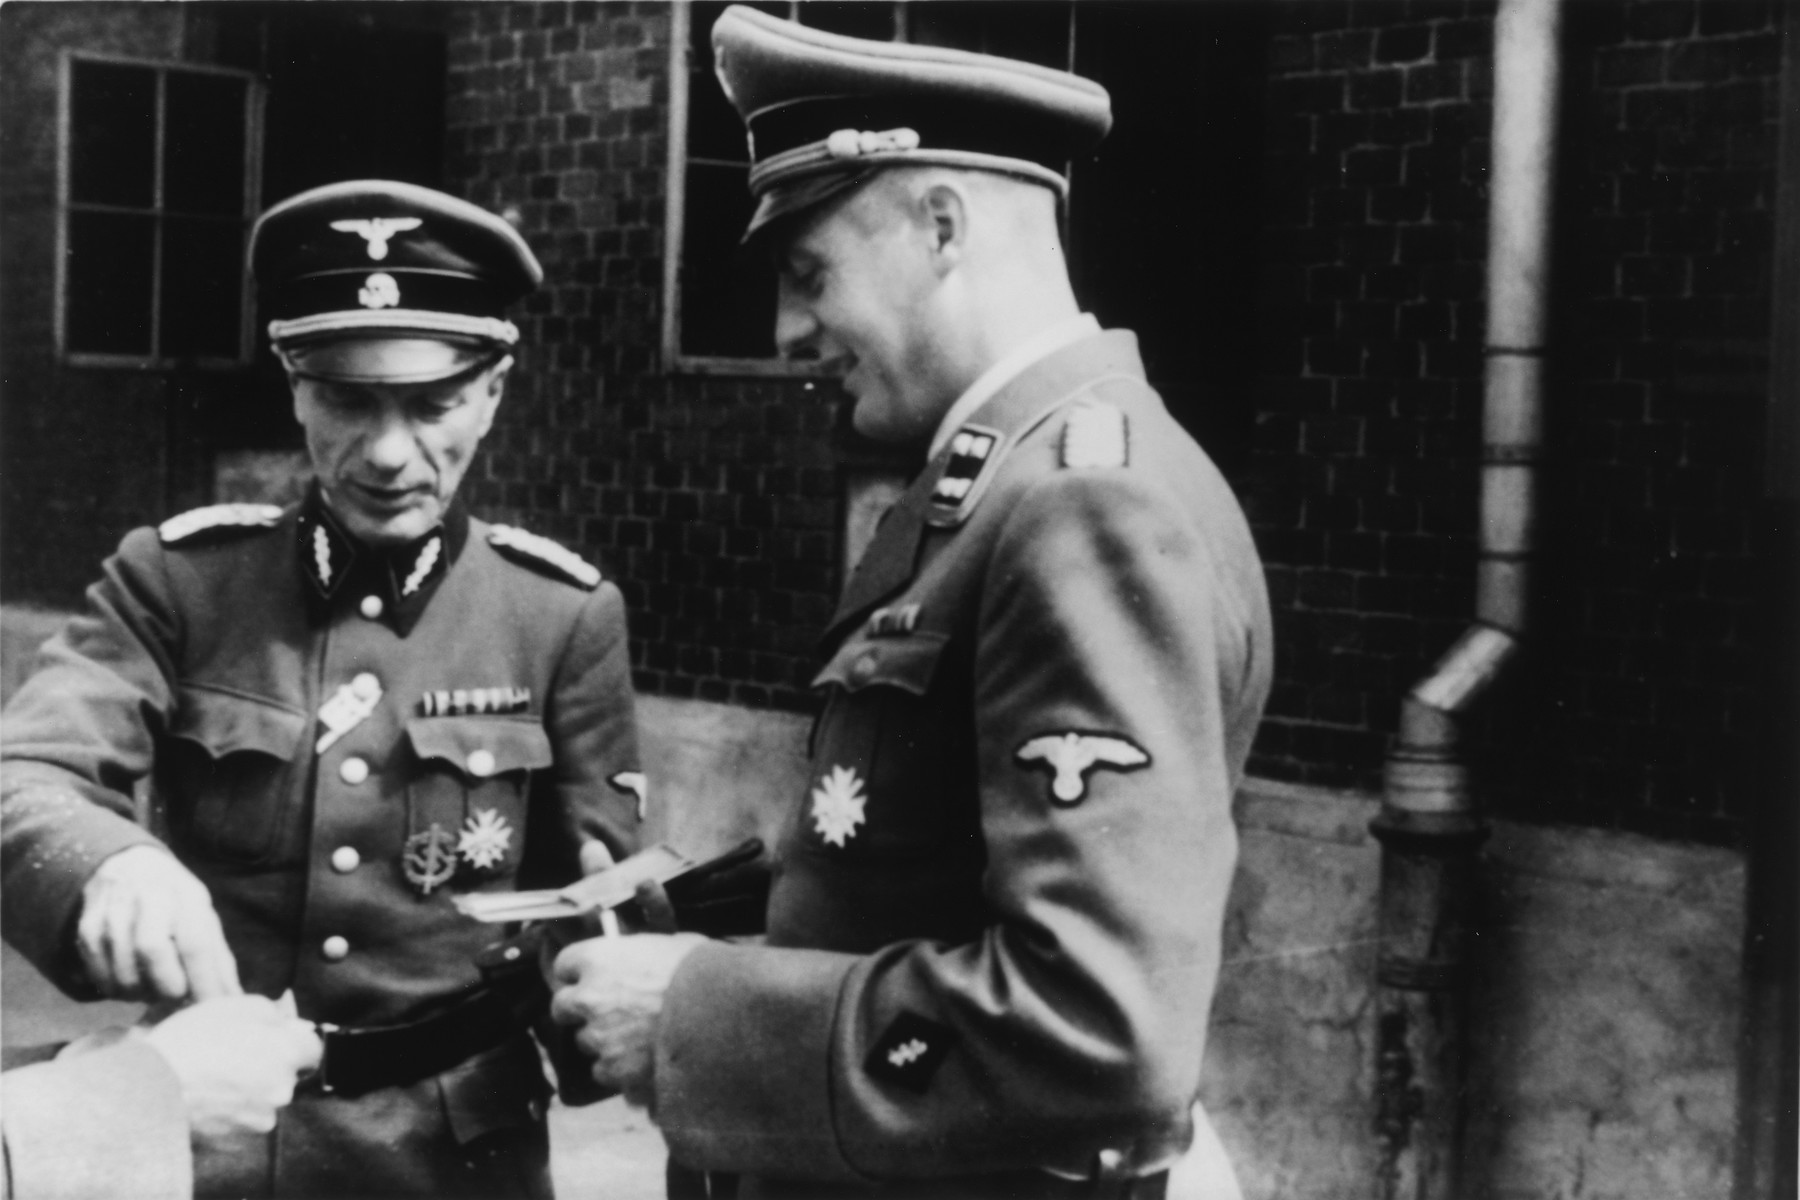 Two SS officers meet during the dedication of the new SS hospital in Auschwitz.  Pictured on the far left is Dr. Enno Lolling and on the right is Dr. Eduard Wirths.  Dr. Wirths also received his promotion to Sturmbannfuehrer and decorated with the War Service Cross 1st Class at the same time and this might be what is being portrayed here.